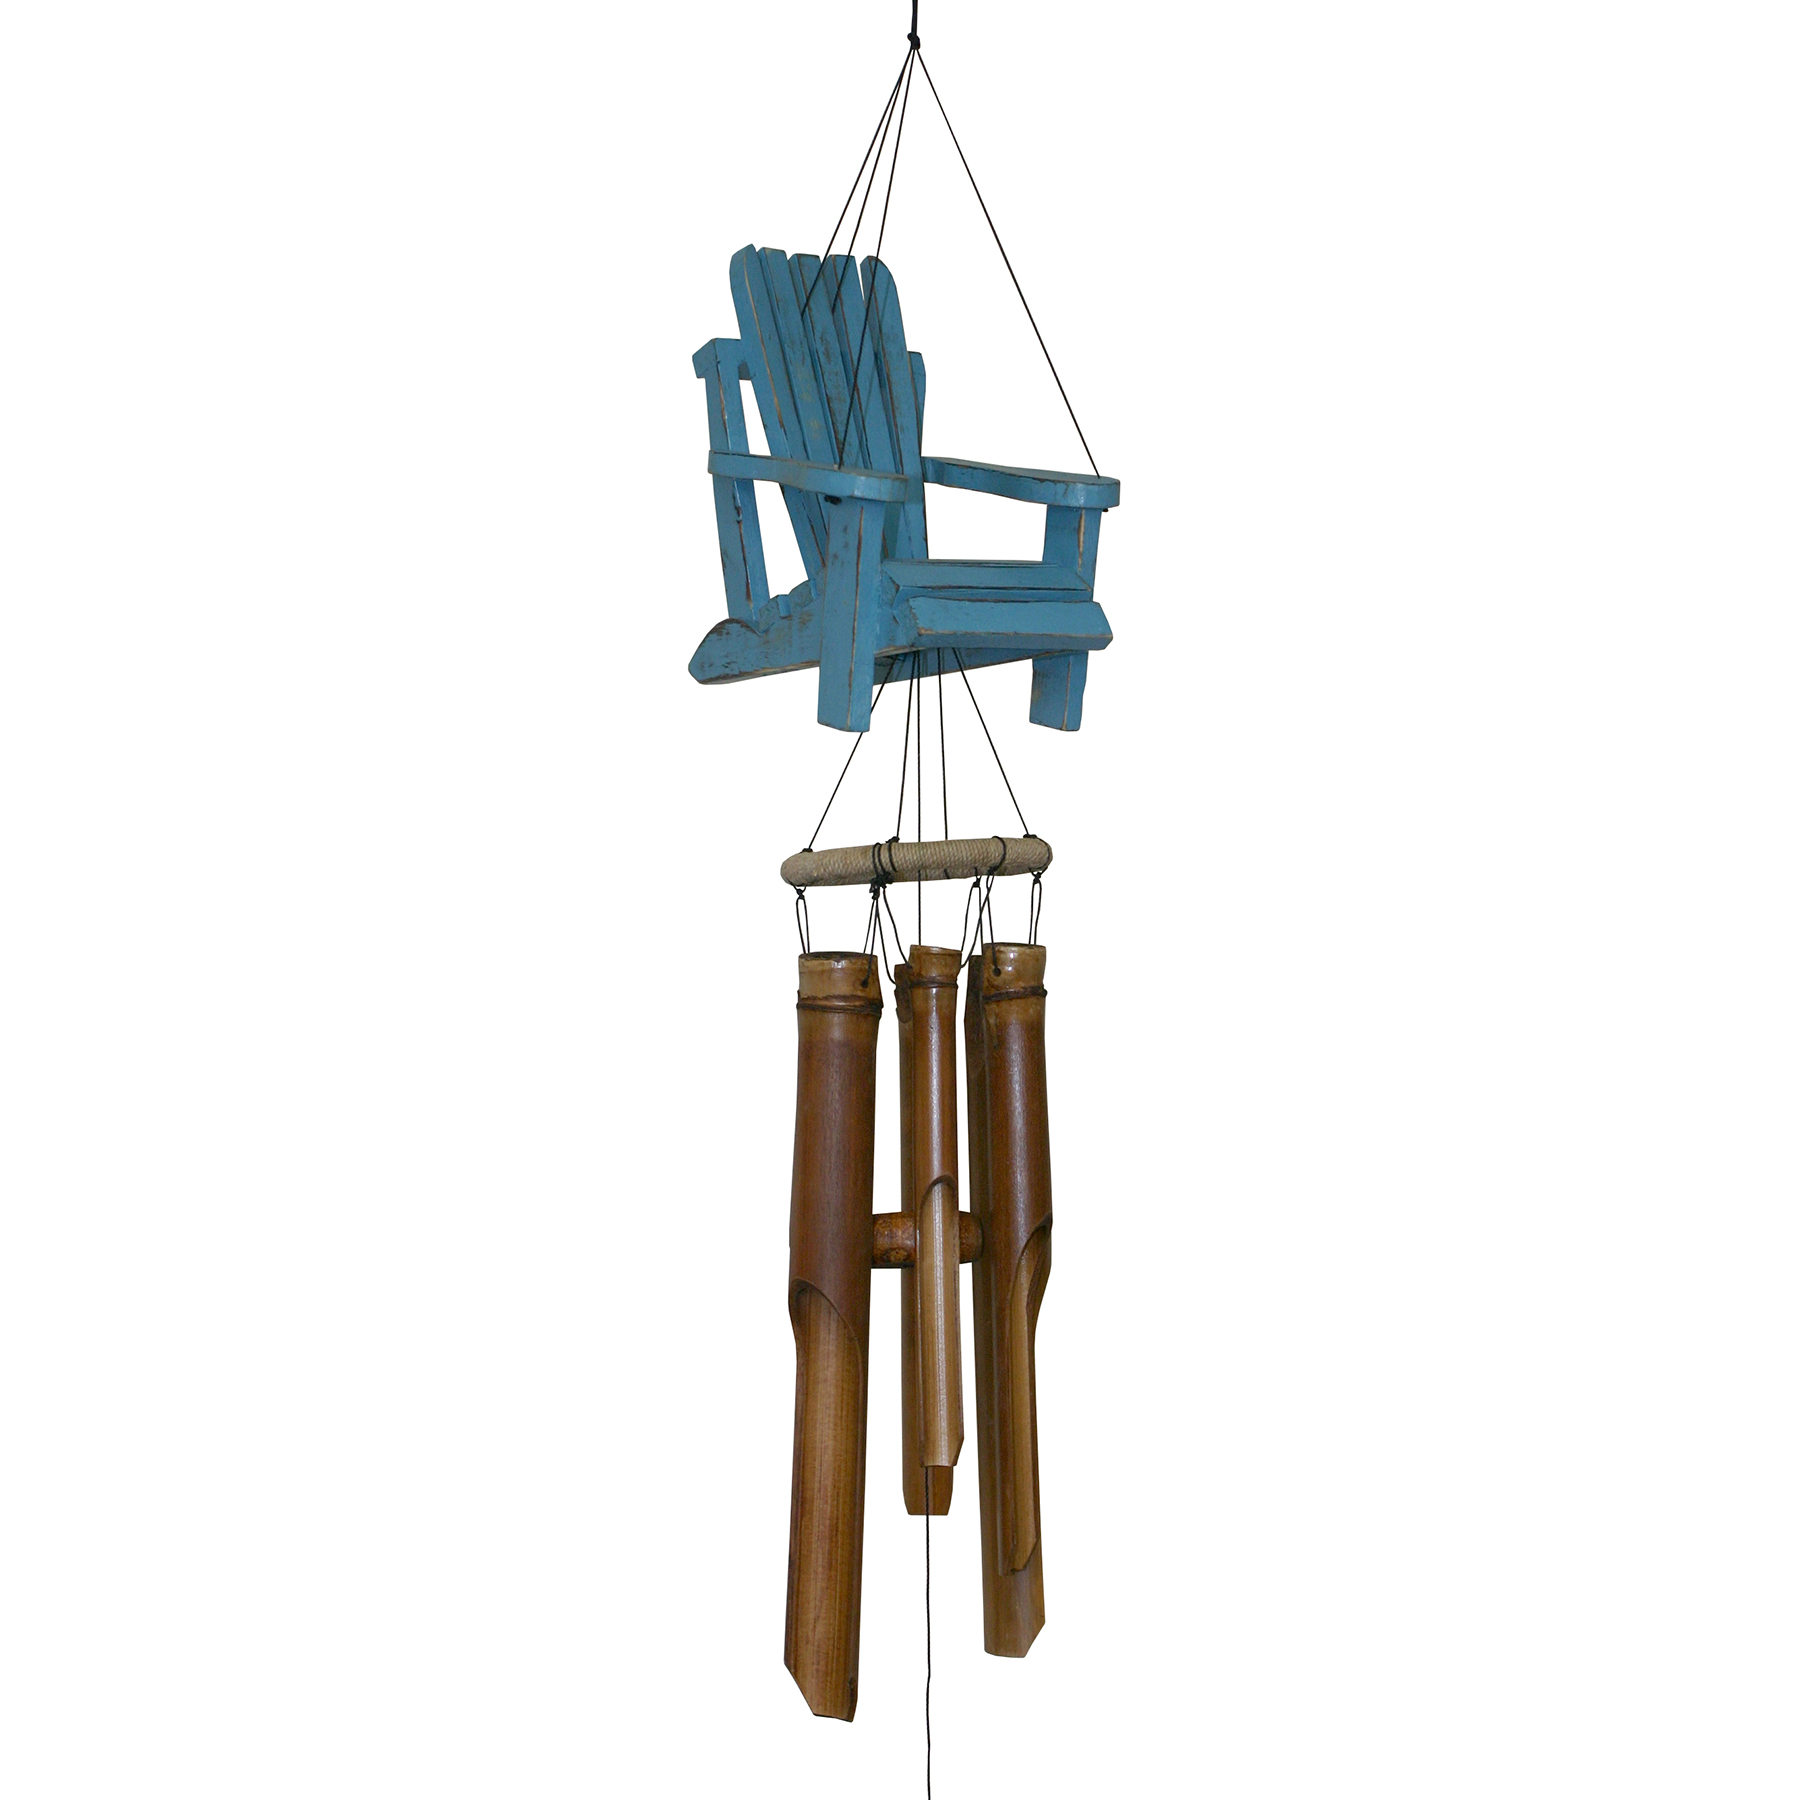 299 - Beach Chair Bamboo Wind Chime